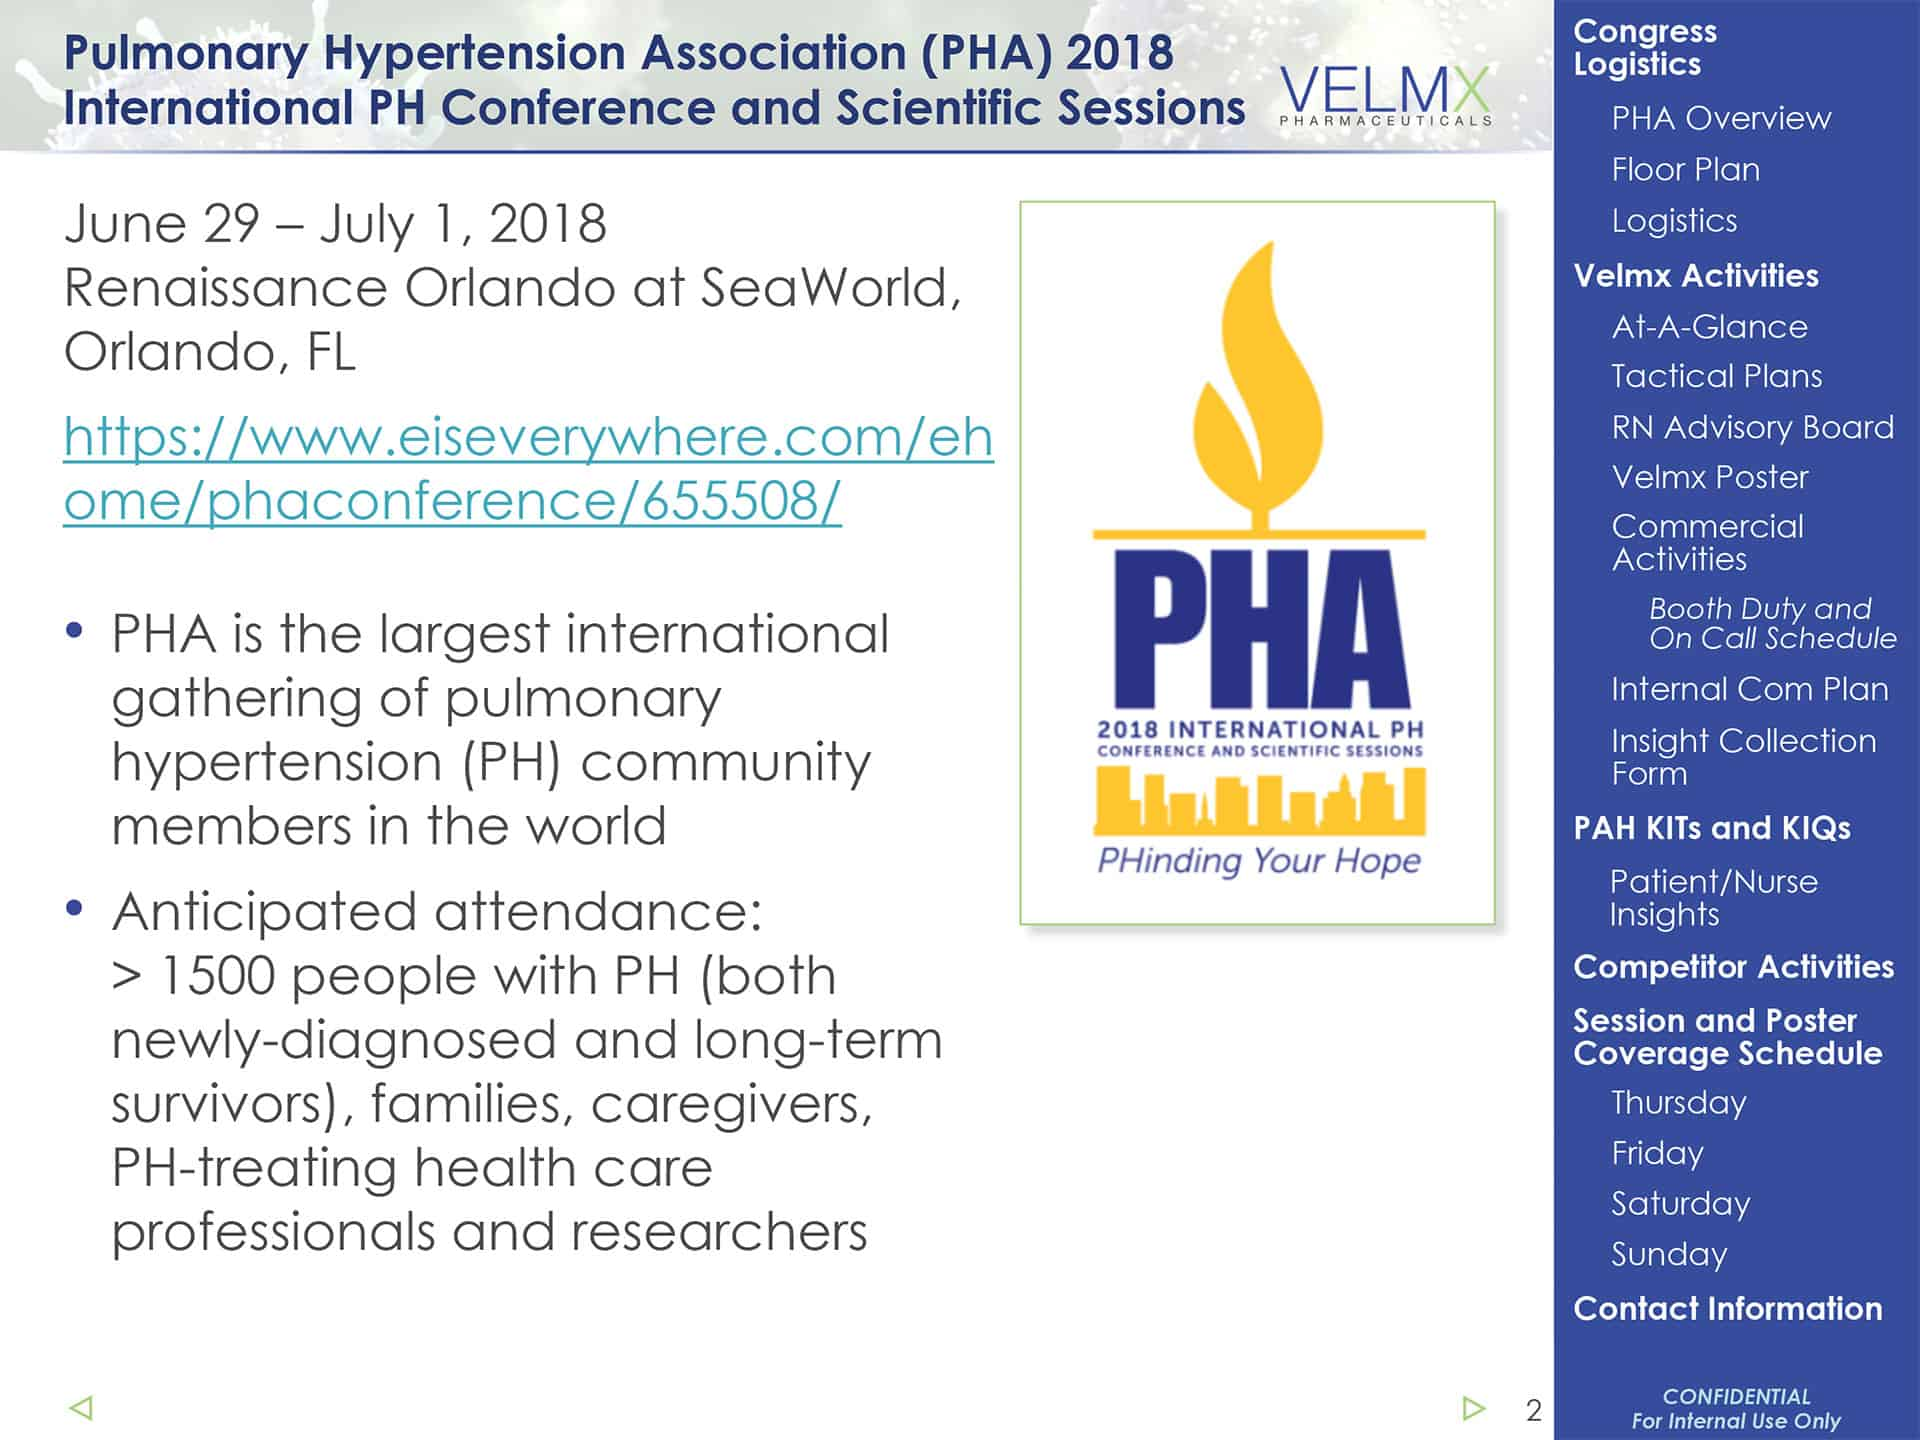 PHA's International PH Conference and scientific june 29 - july 1